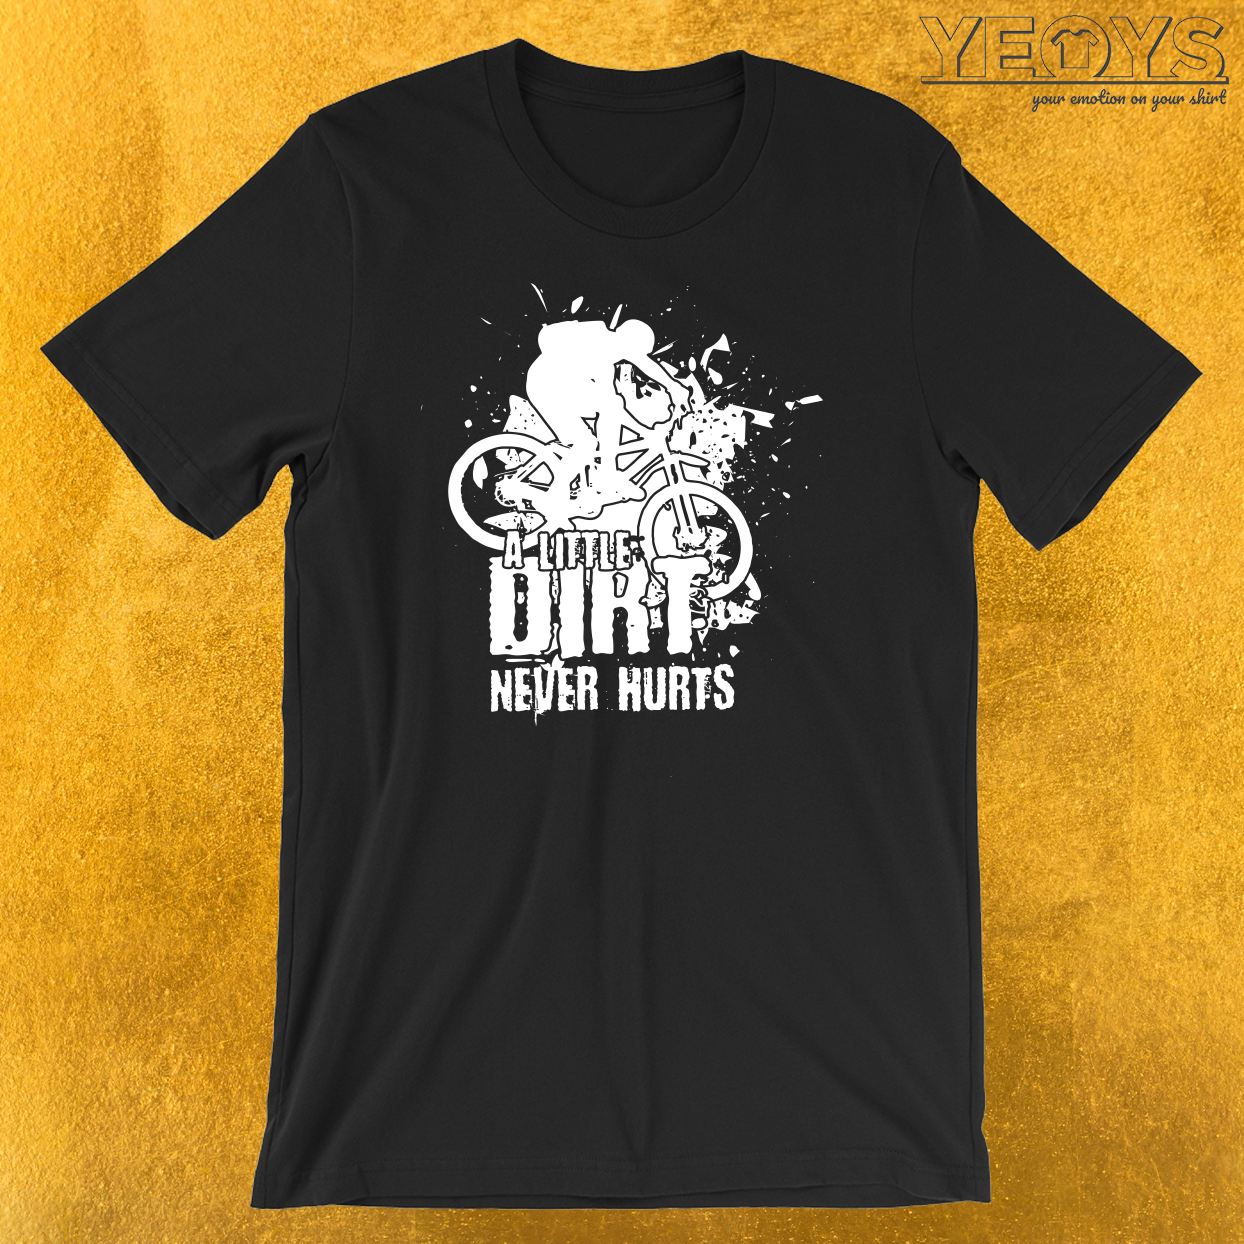 A Little Dirt Never Hurts T-Shirt